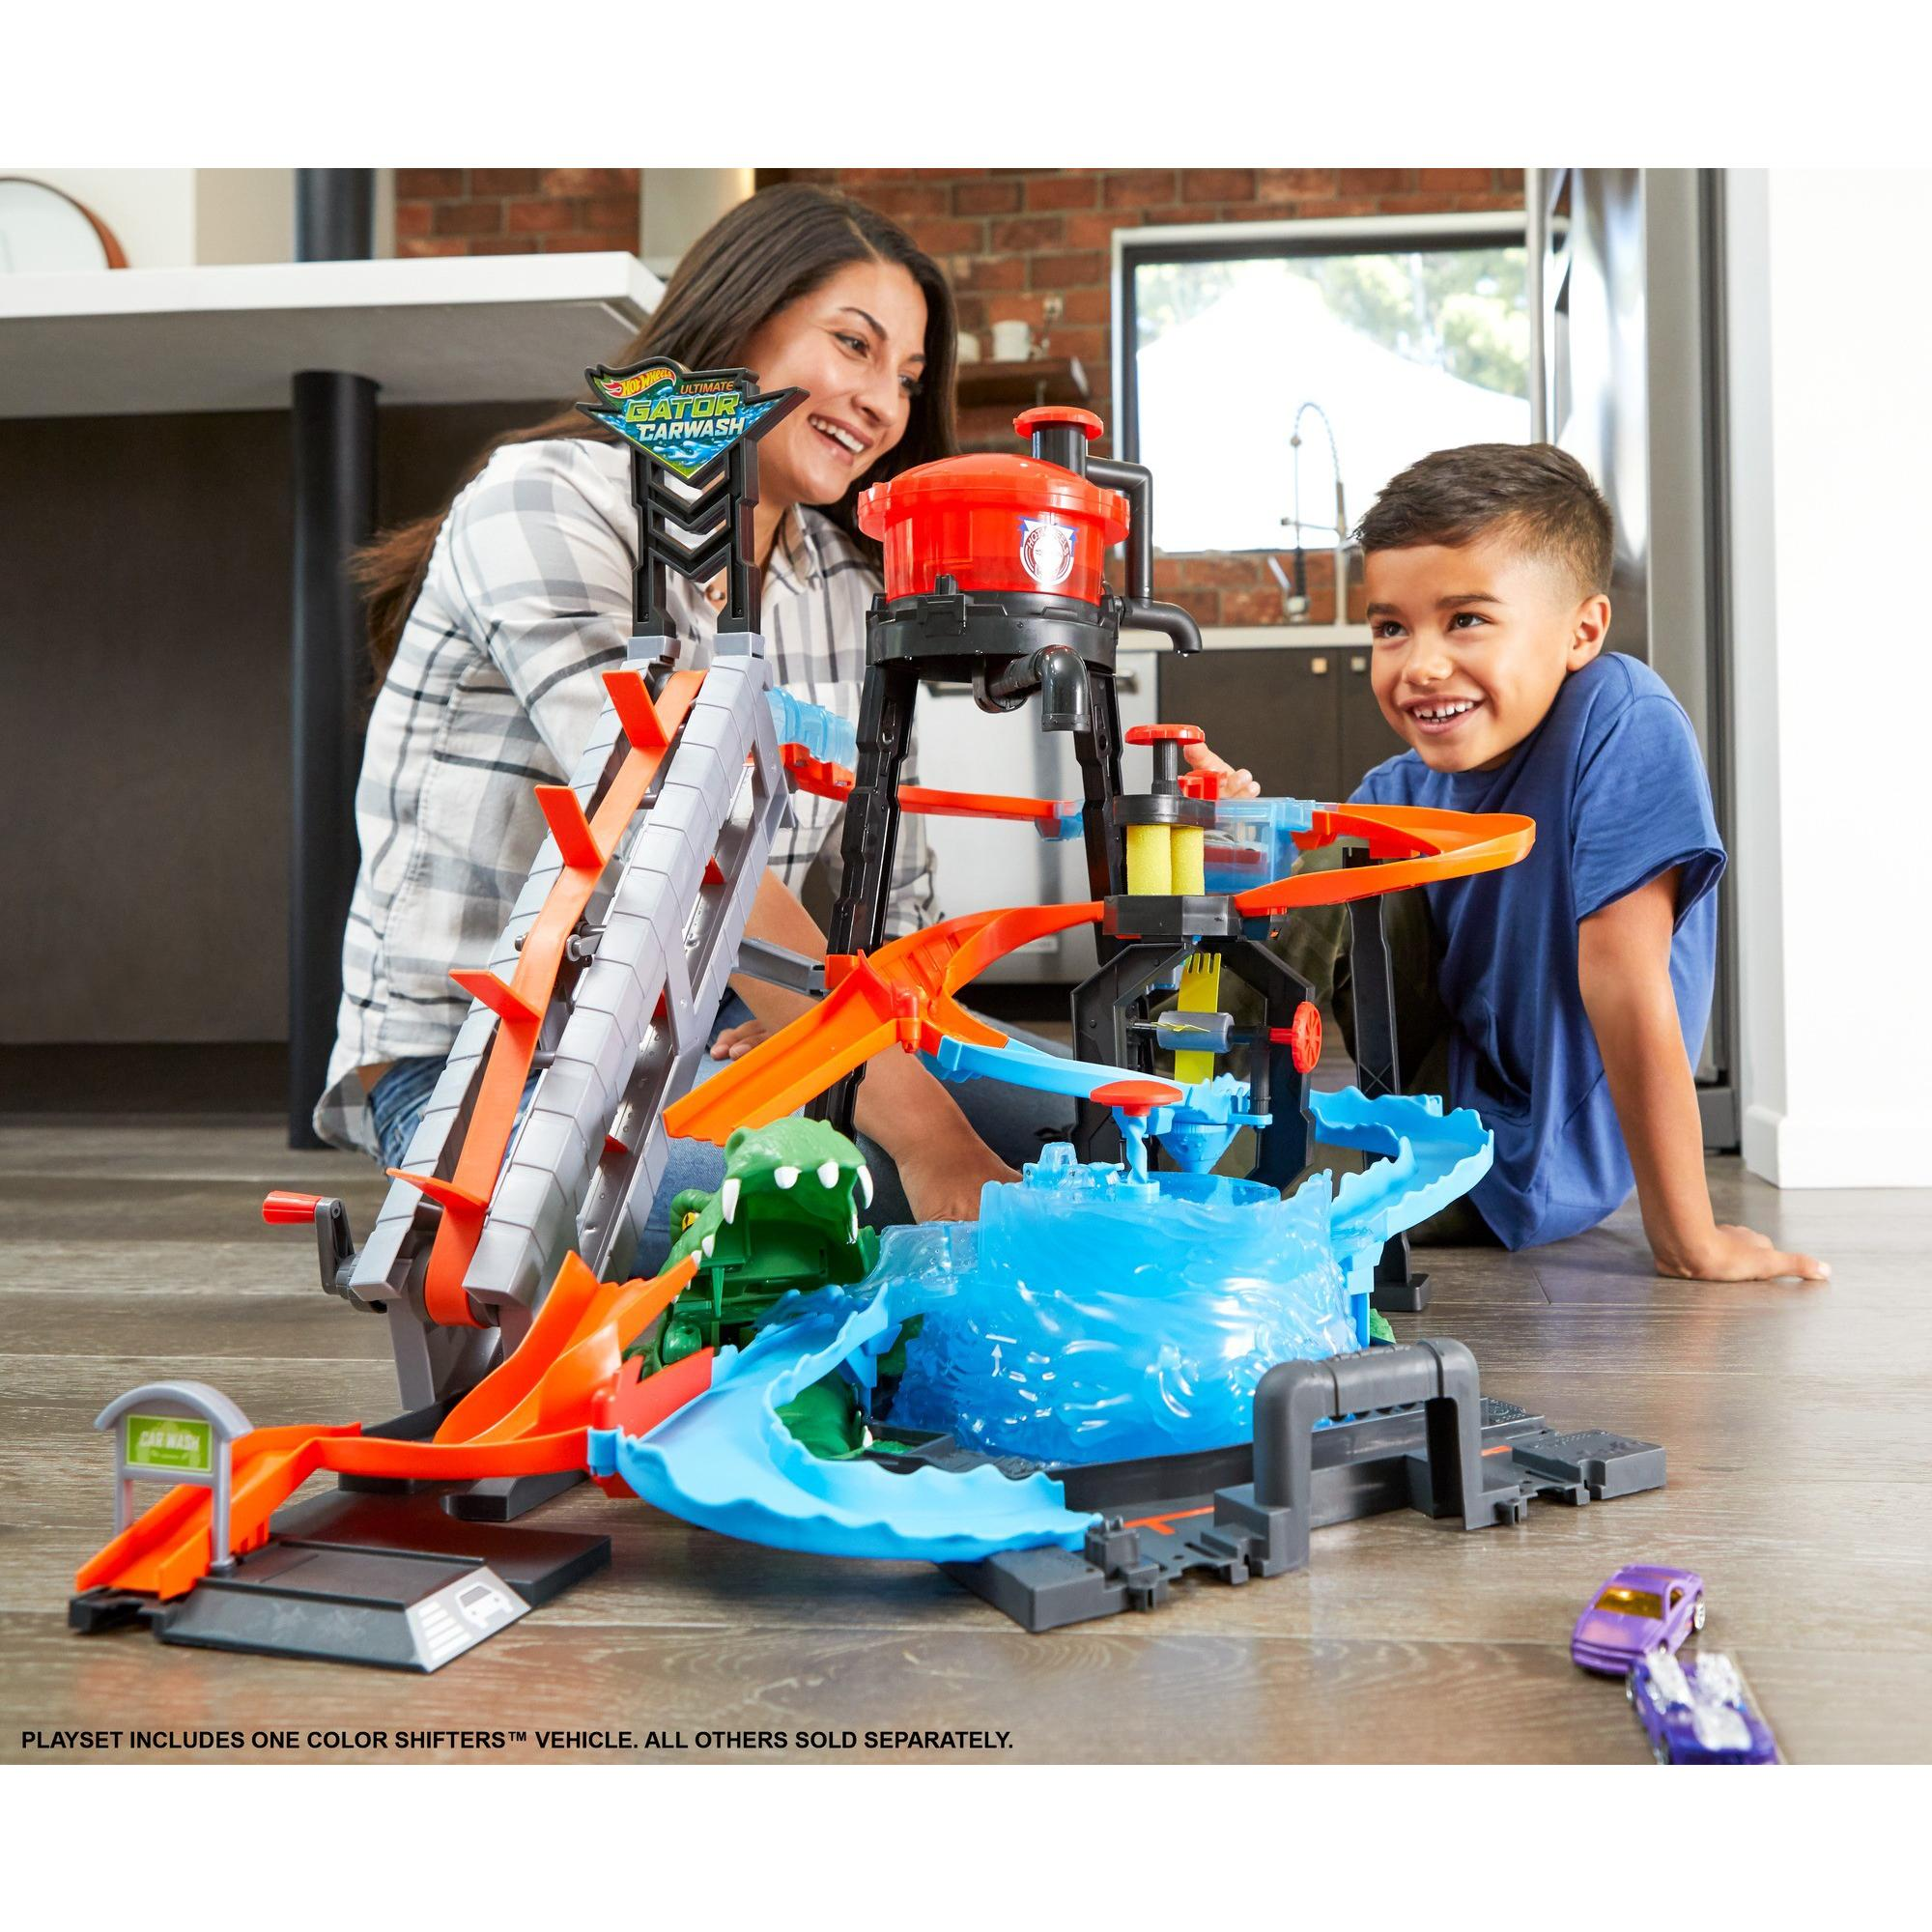 Hot Wheels Ultimate Gator Car Wash Kids Play Set With Color Shifters